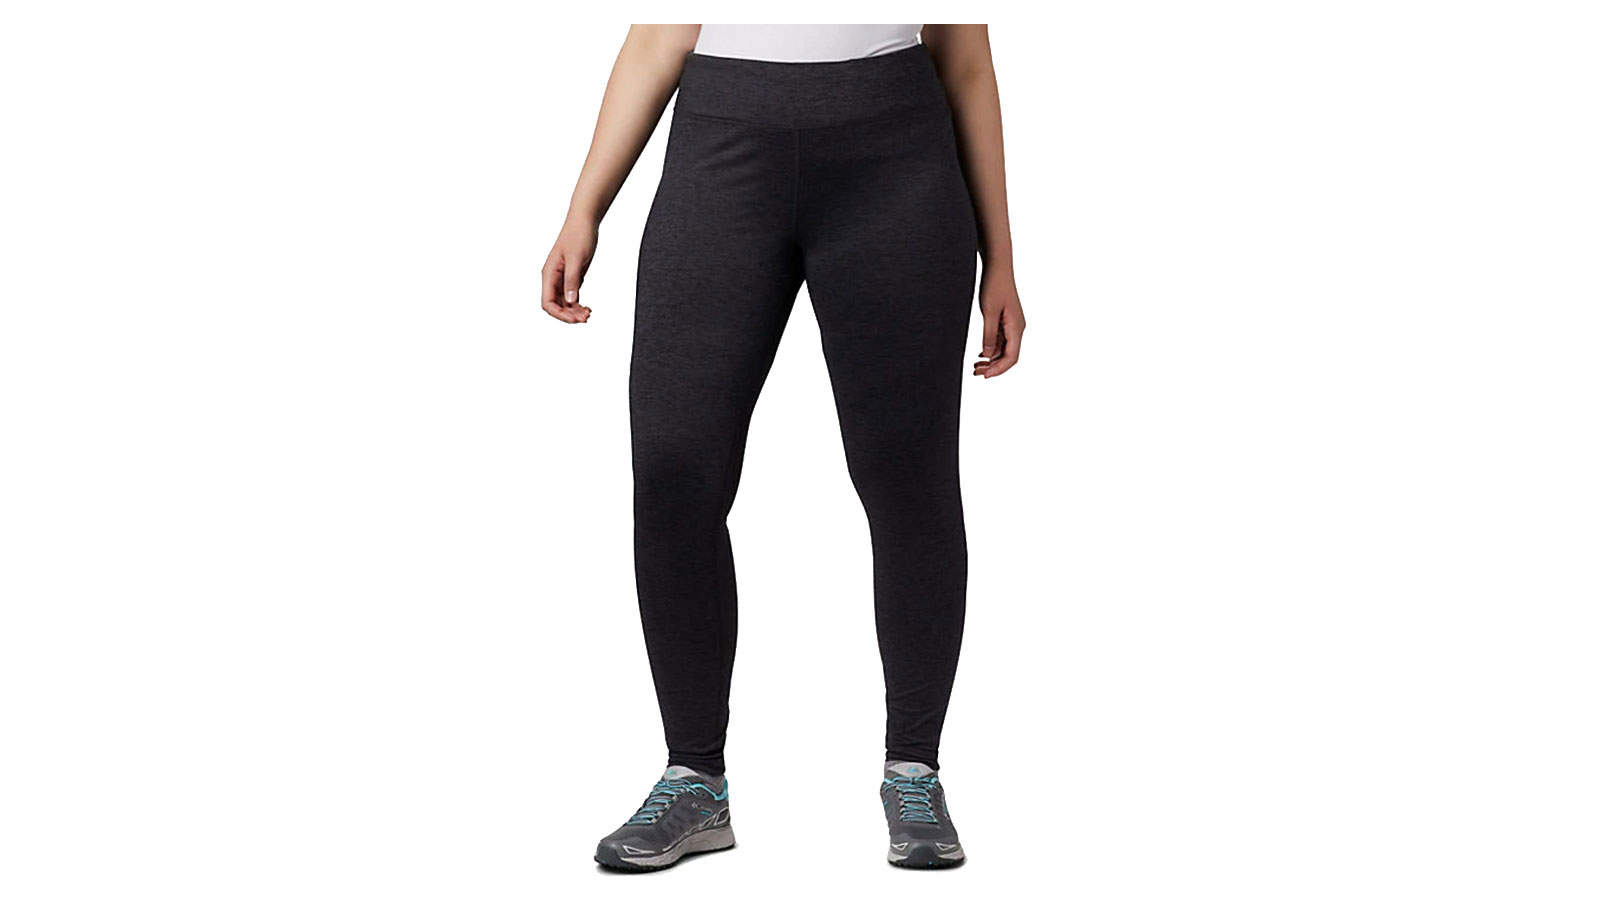 Women's Northern Comfort Fall Legging - Plus Size